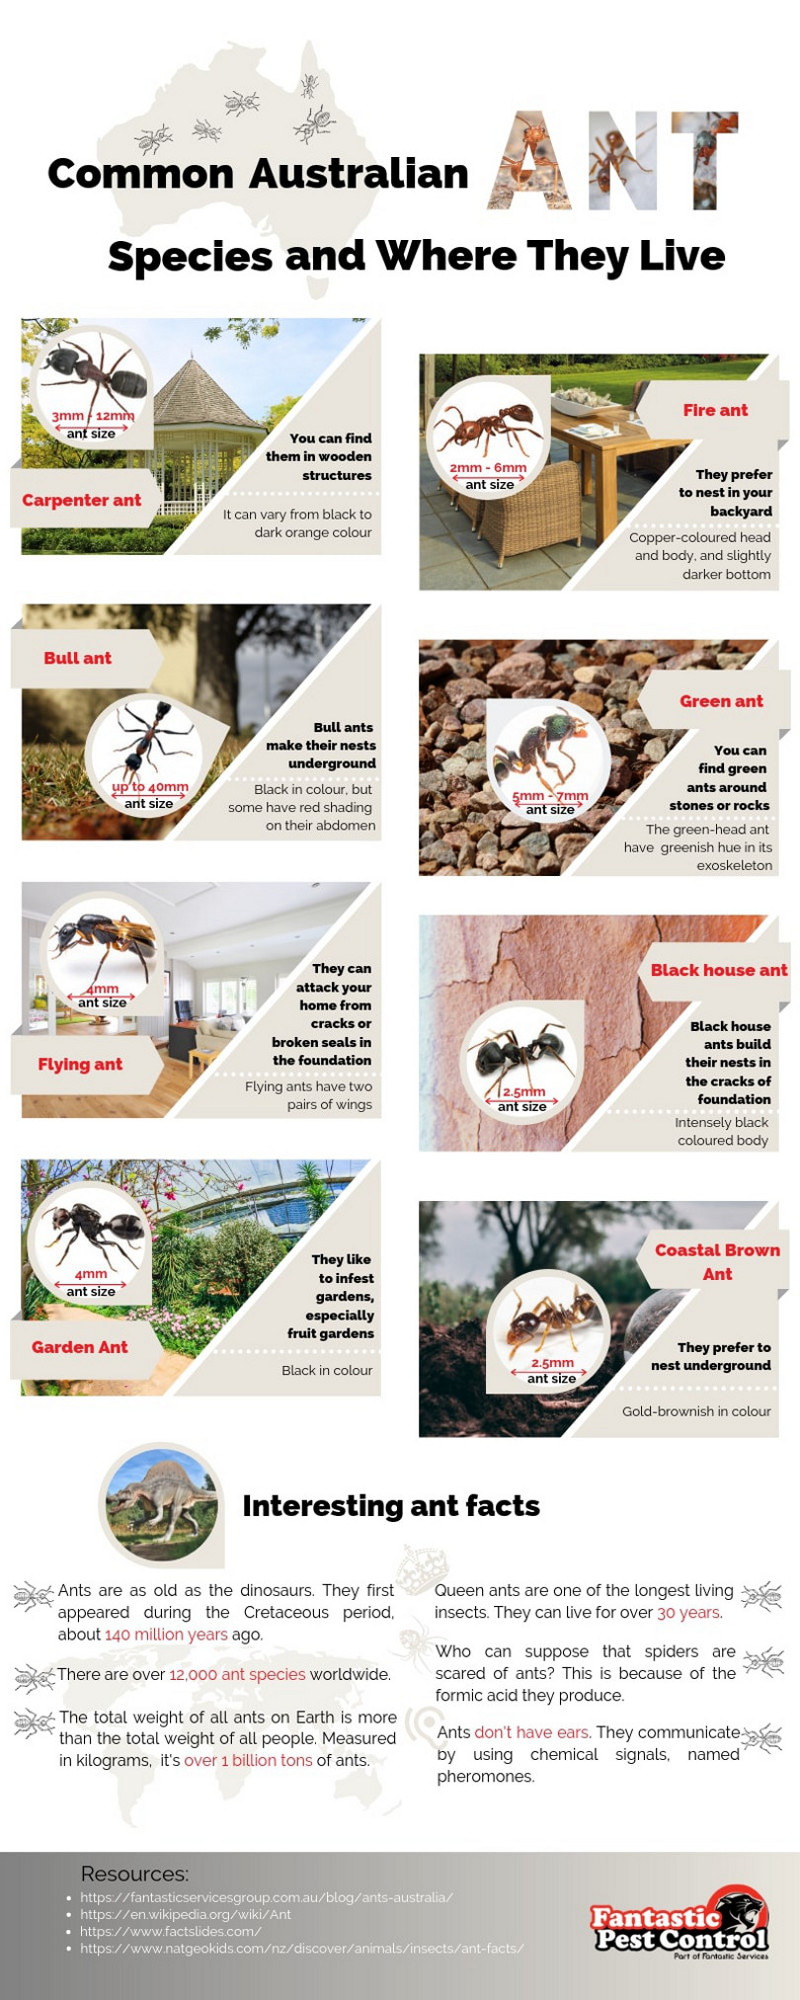 Common Australian Ant Species and Where They Live